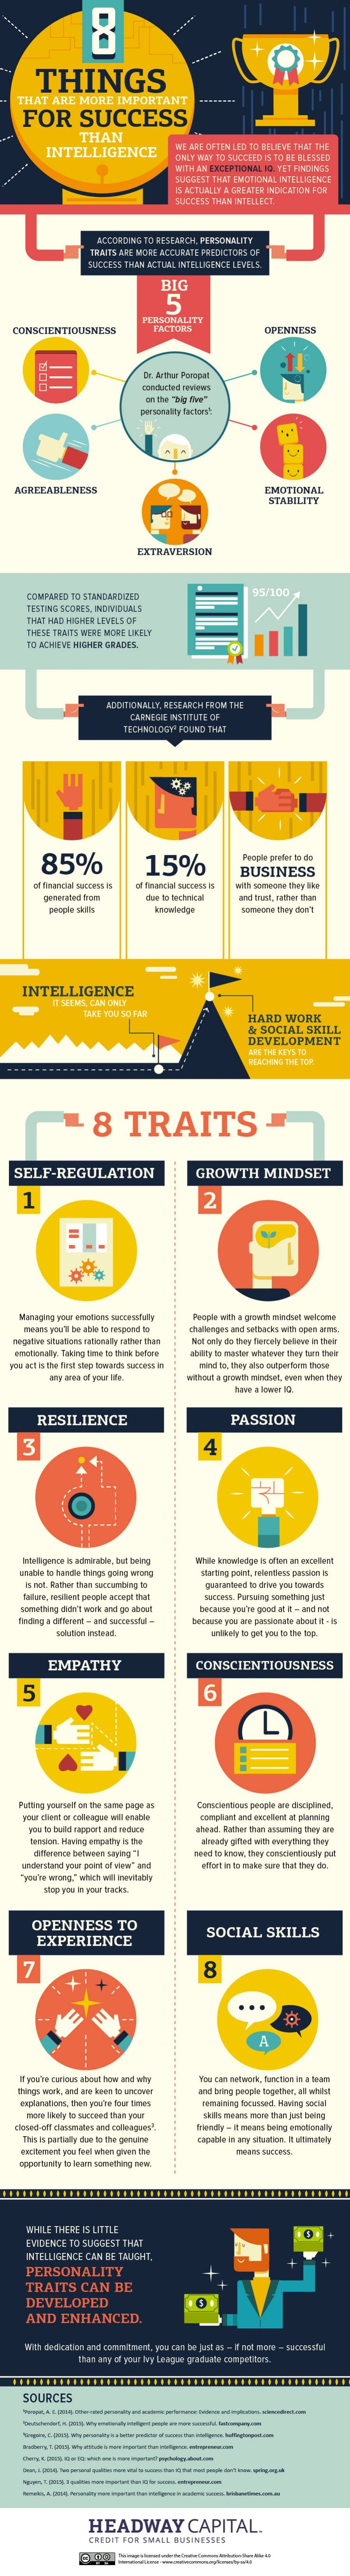 8 things that are more important for success than intelligence recruiting hr career successcareer advicecareer inspirationlife - Successful Career How To Be Successful In Career In Life